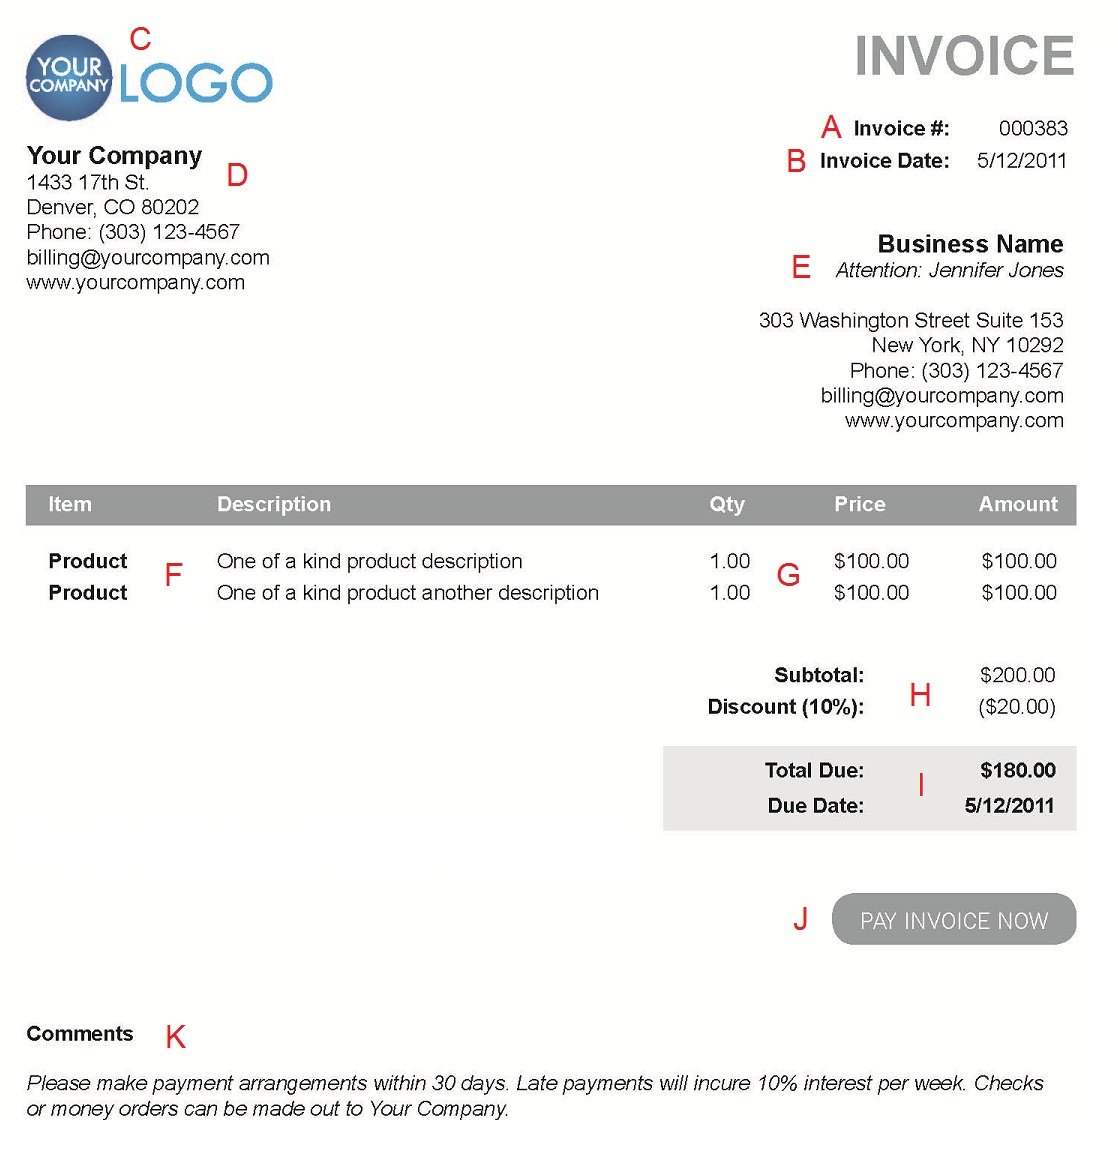 Coolmathgamesus  Surprising The  Different Sections Of An Electronic Payment Invoice With Fascinating A  With Nice Free Template For Invoice For Services Rendered Also Cash Invoice Sample In Addition Mobile Invoice Software And Printable Invoice Template Free As Well As Mock Invoice Template Additionally Excel  Invoice Template From Paysimplecom With Coolmathgamesus  Fascinating The  Different Sections Of An Electronic Payment Invoice With Nice A  And Surprising Free Template For Invoice For Services Rendered Also Cash Invoice Sample In Addition Mobile Invoice Software From Paysimplecom